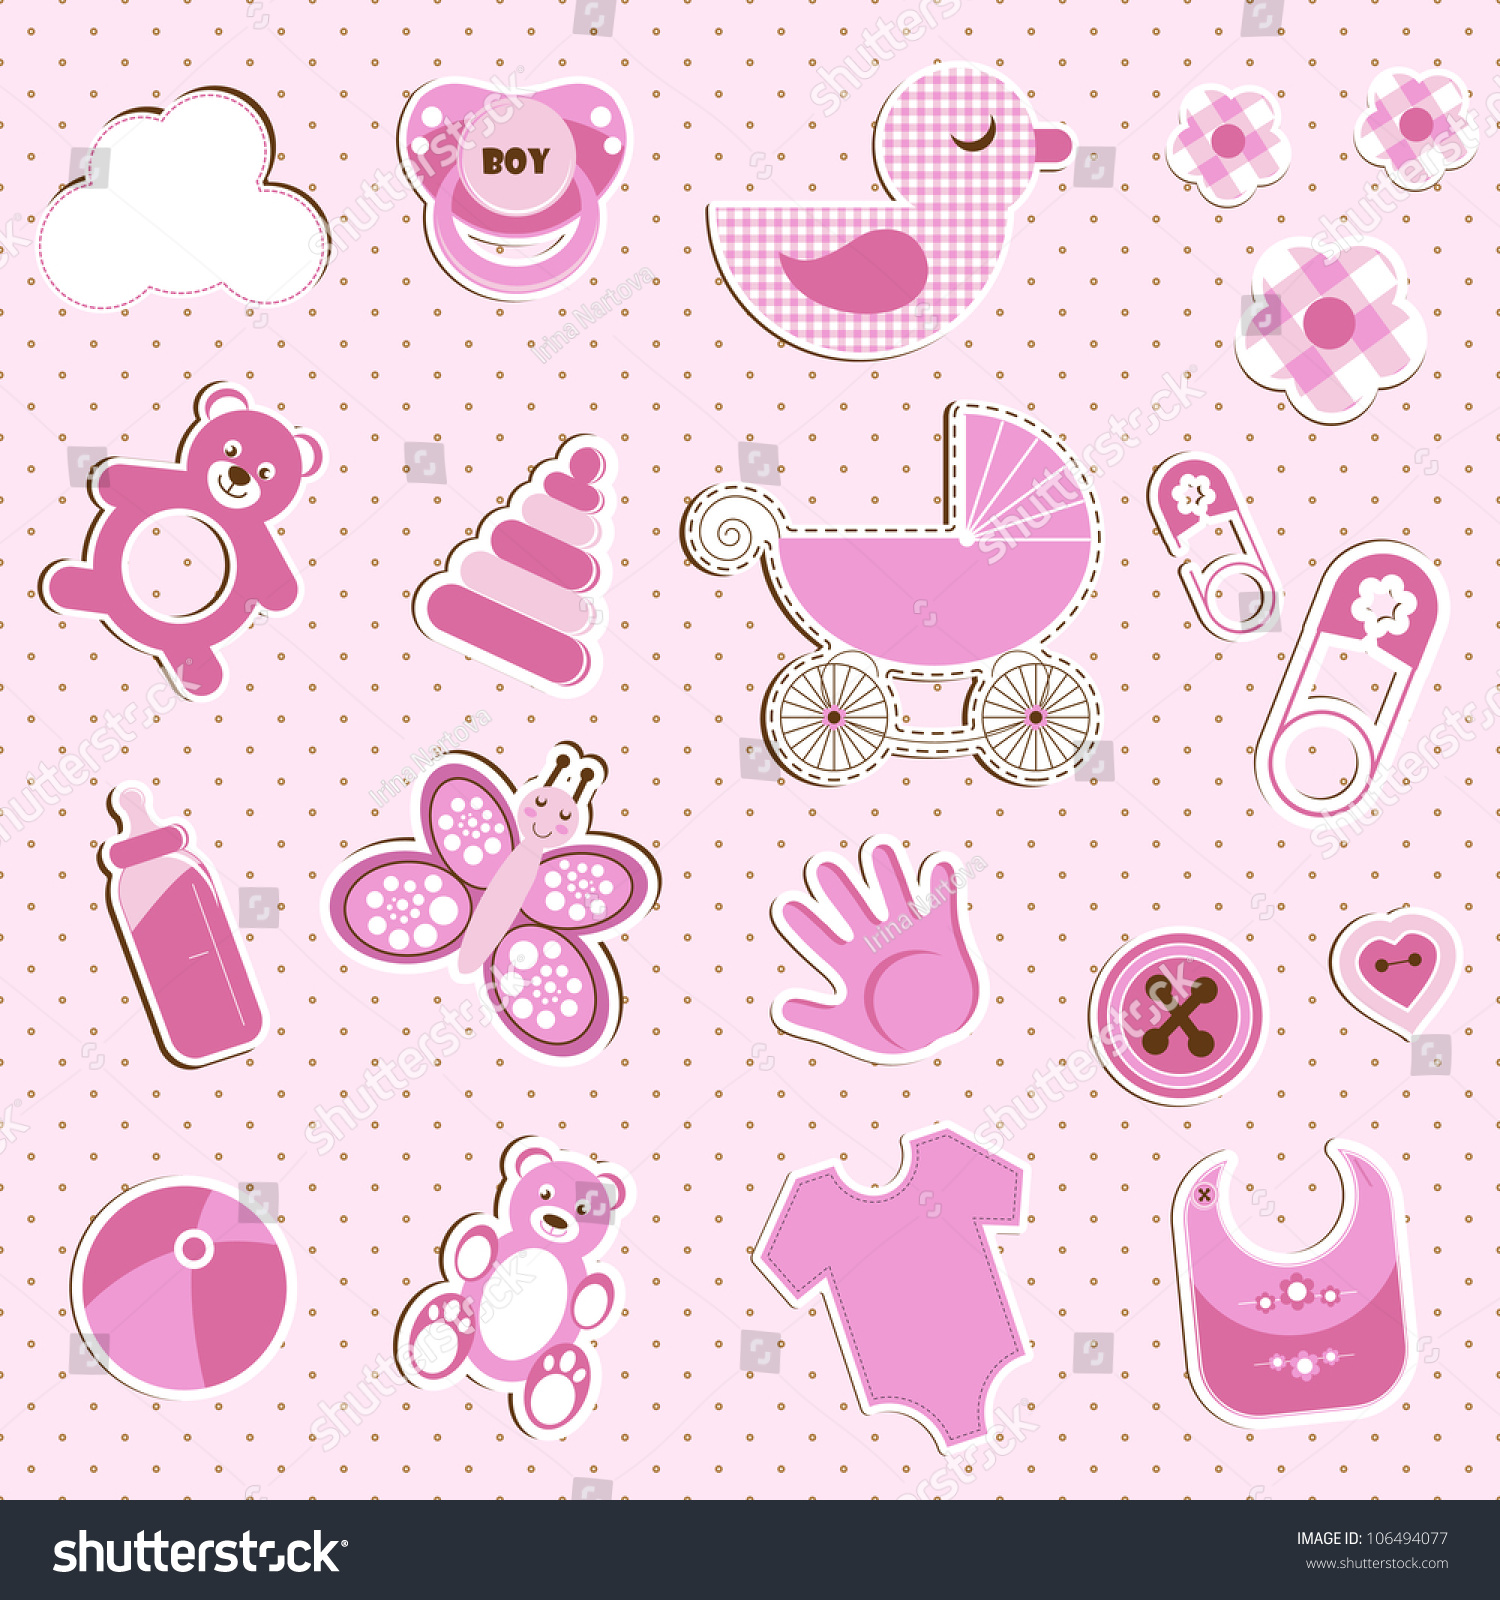 How to scrapbook for baby girl - Scrapbook Set Of Baby Girl Things